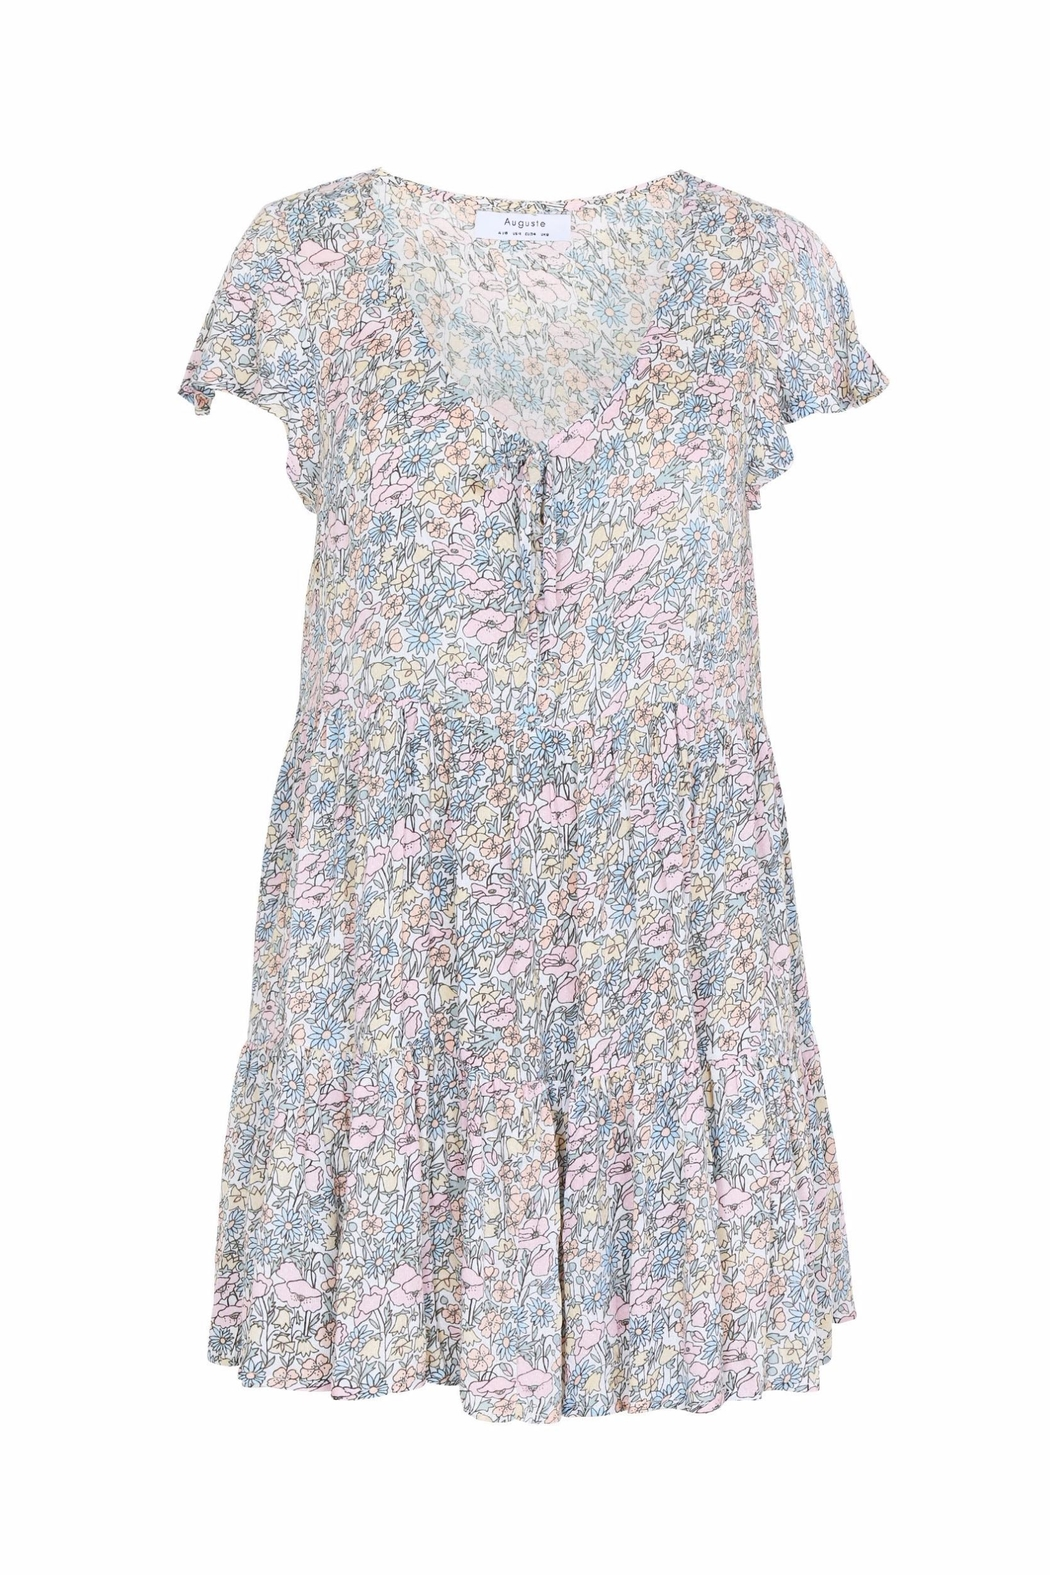 Auguste The Label  Babydoll Floral Mini - Main Image